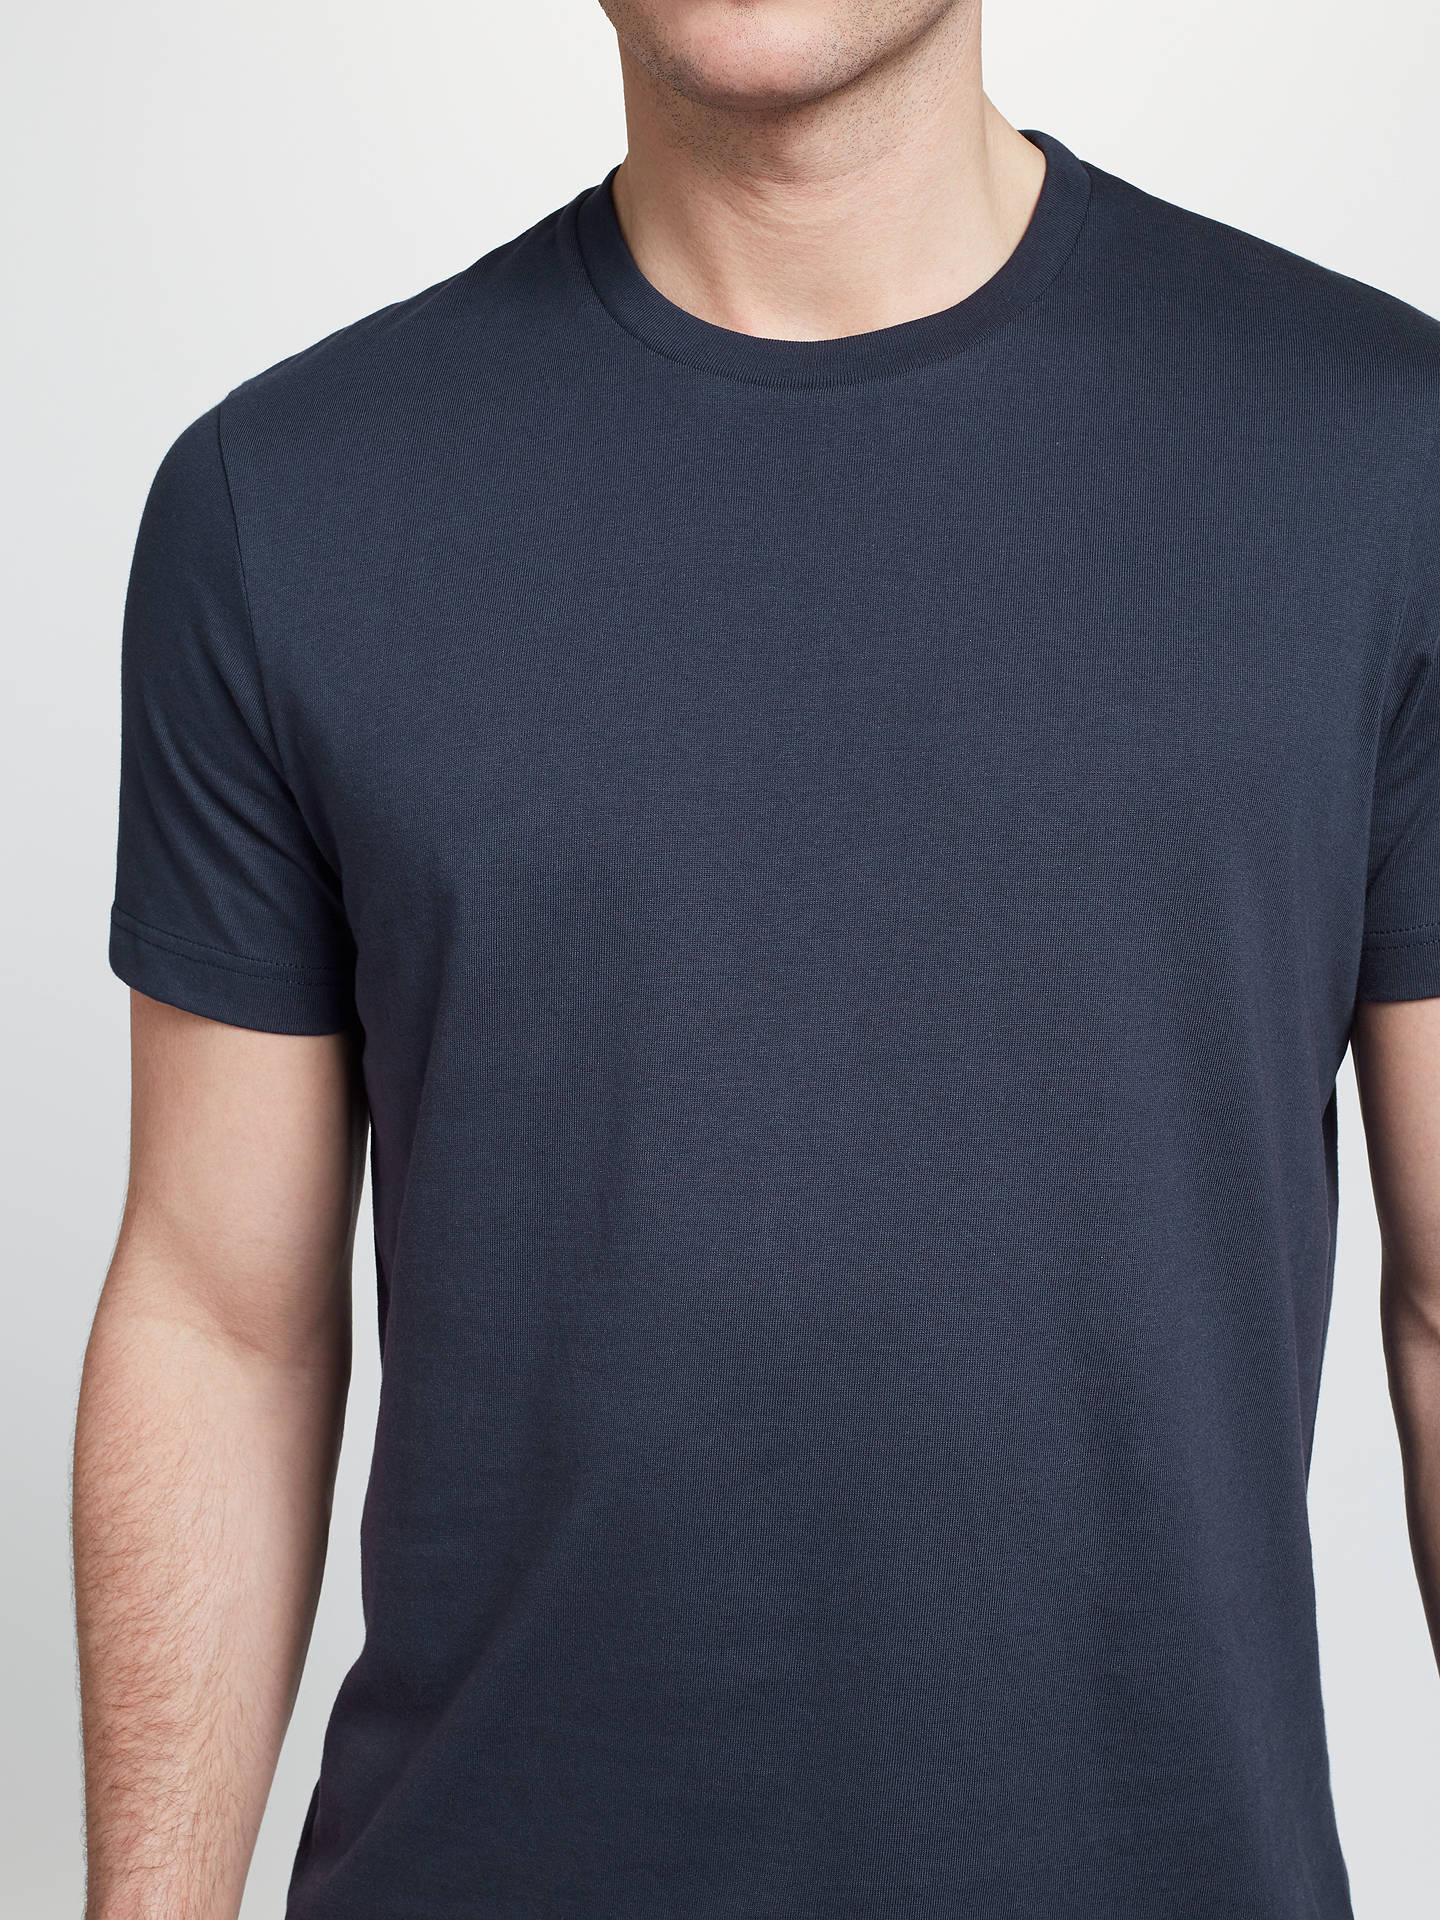 BuyJohn Lewis & Partners Basic Cotton Crew Neck T-Shirt, Navy, S Online at johnlewis.com